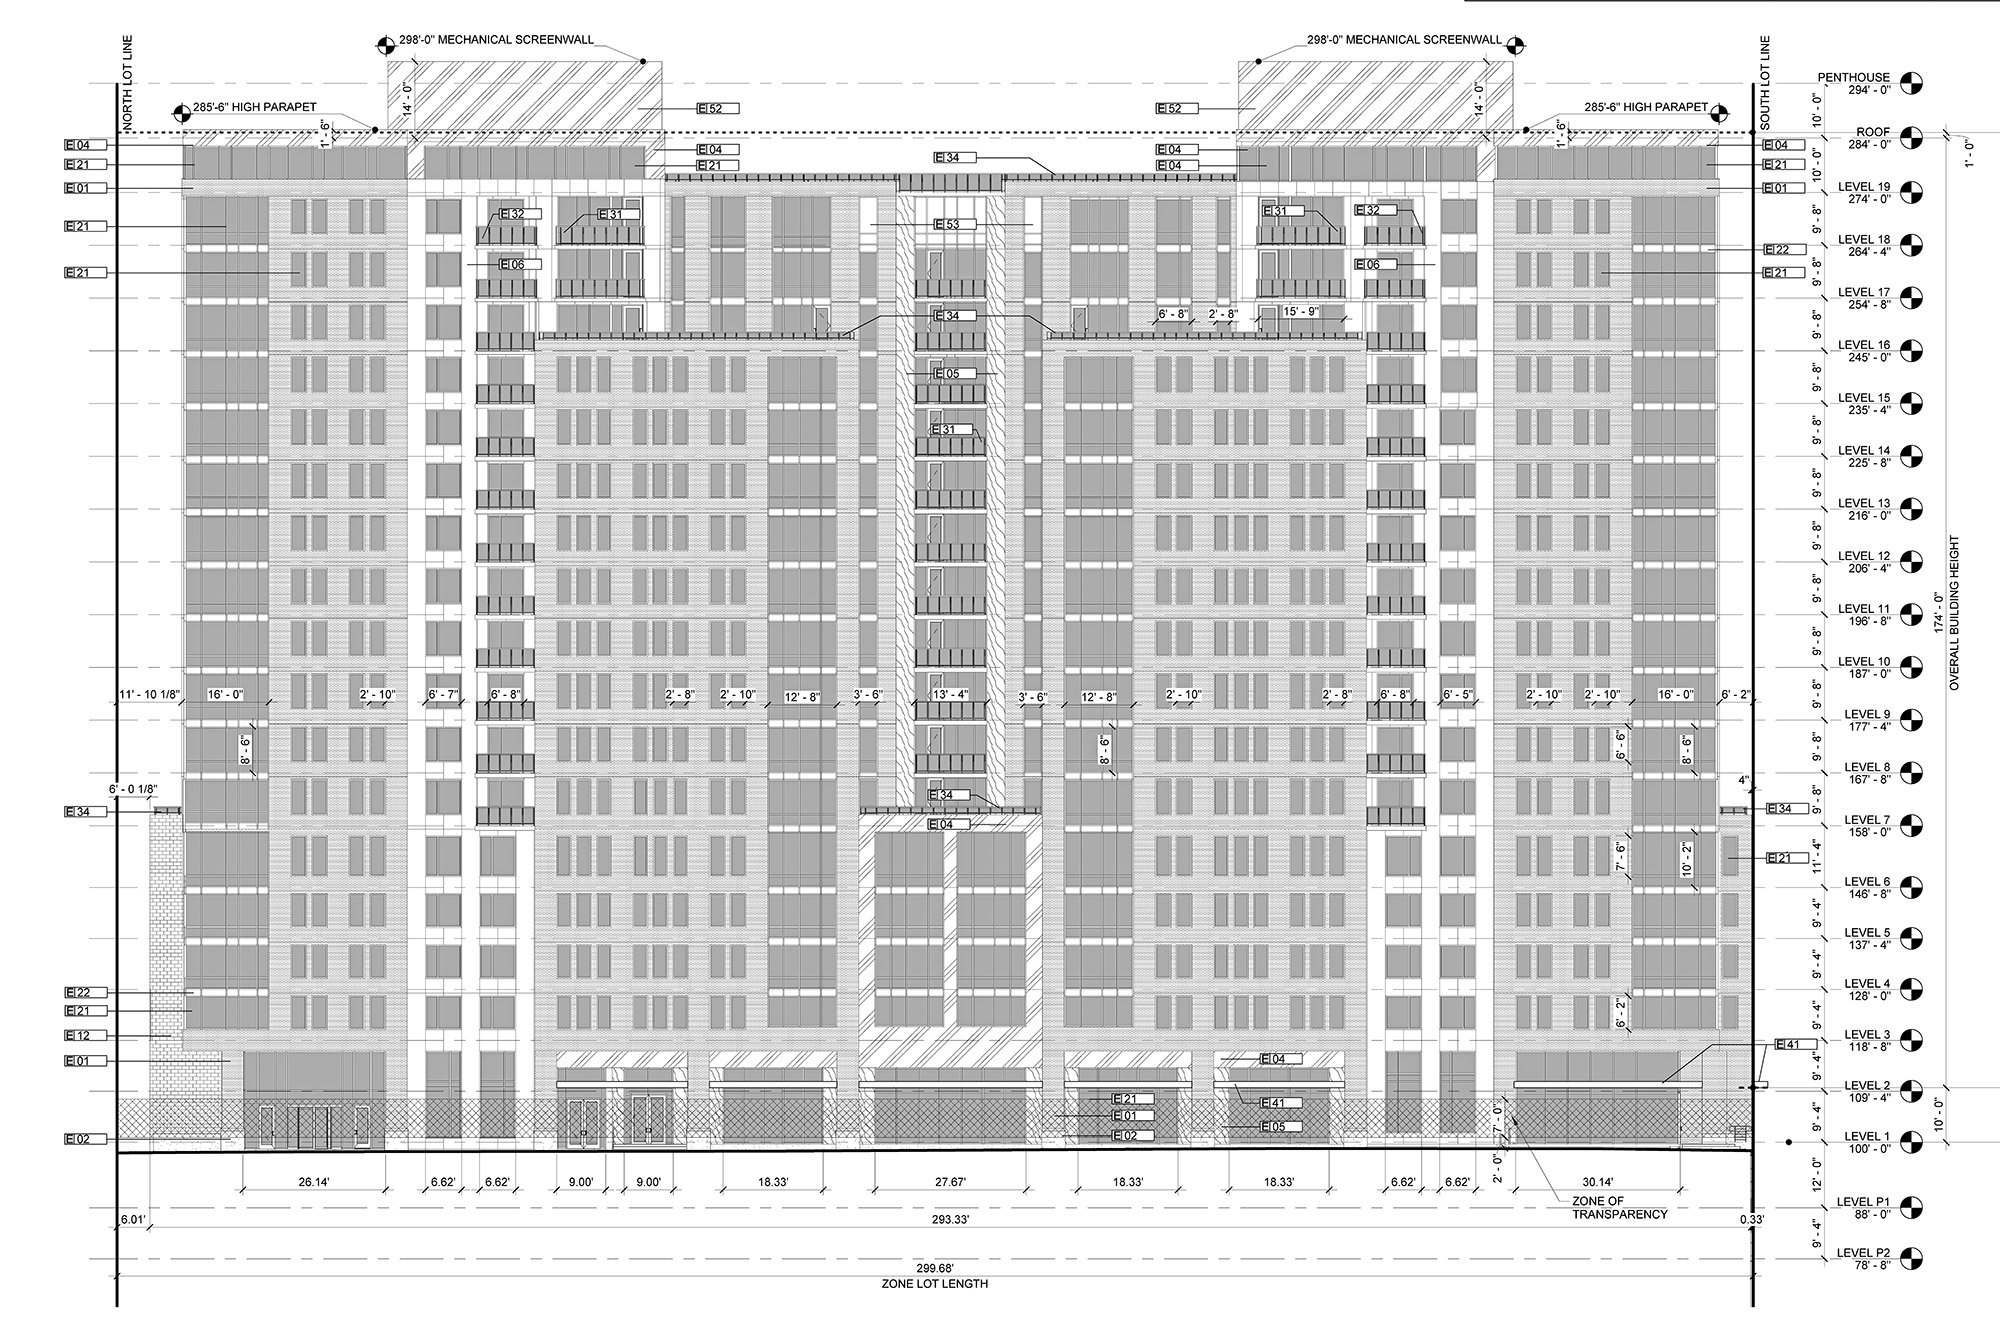 11th and Bannock proposed front facade elevation, courtesy of Davis Partnership